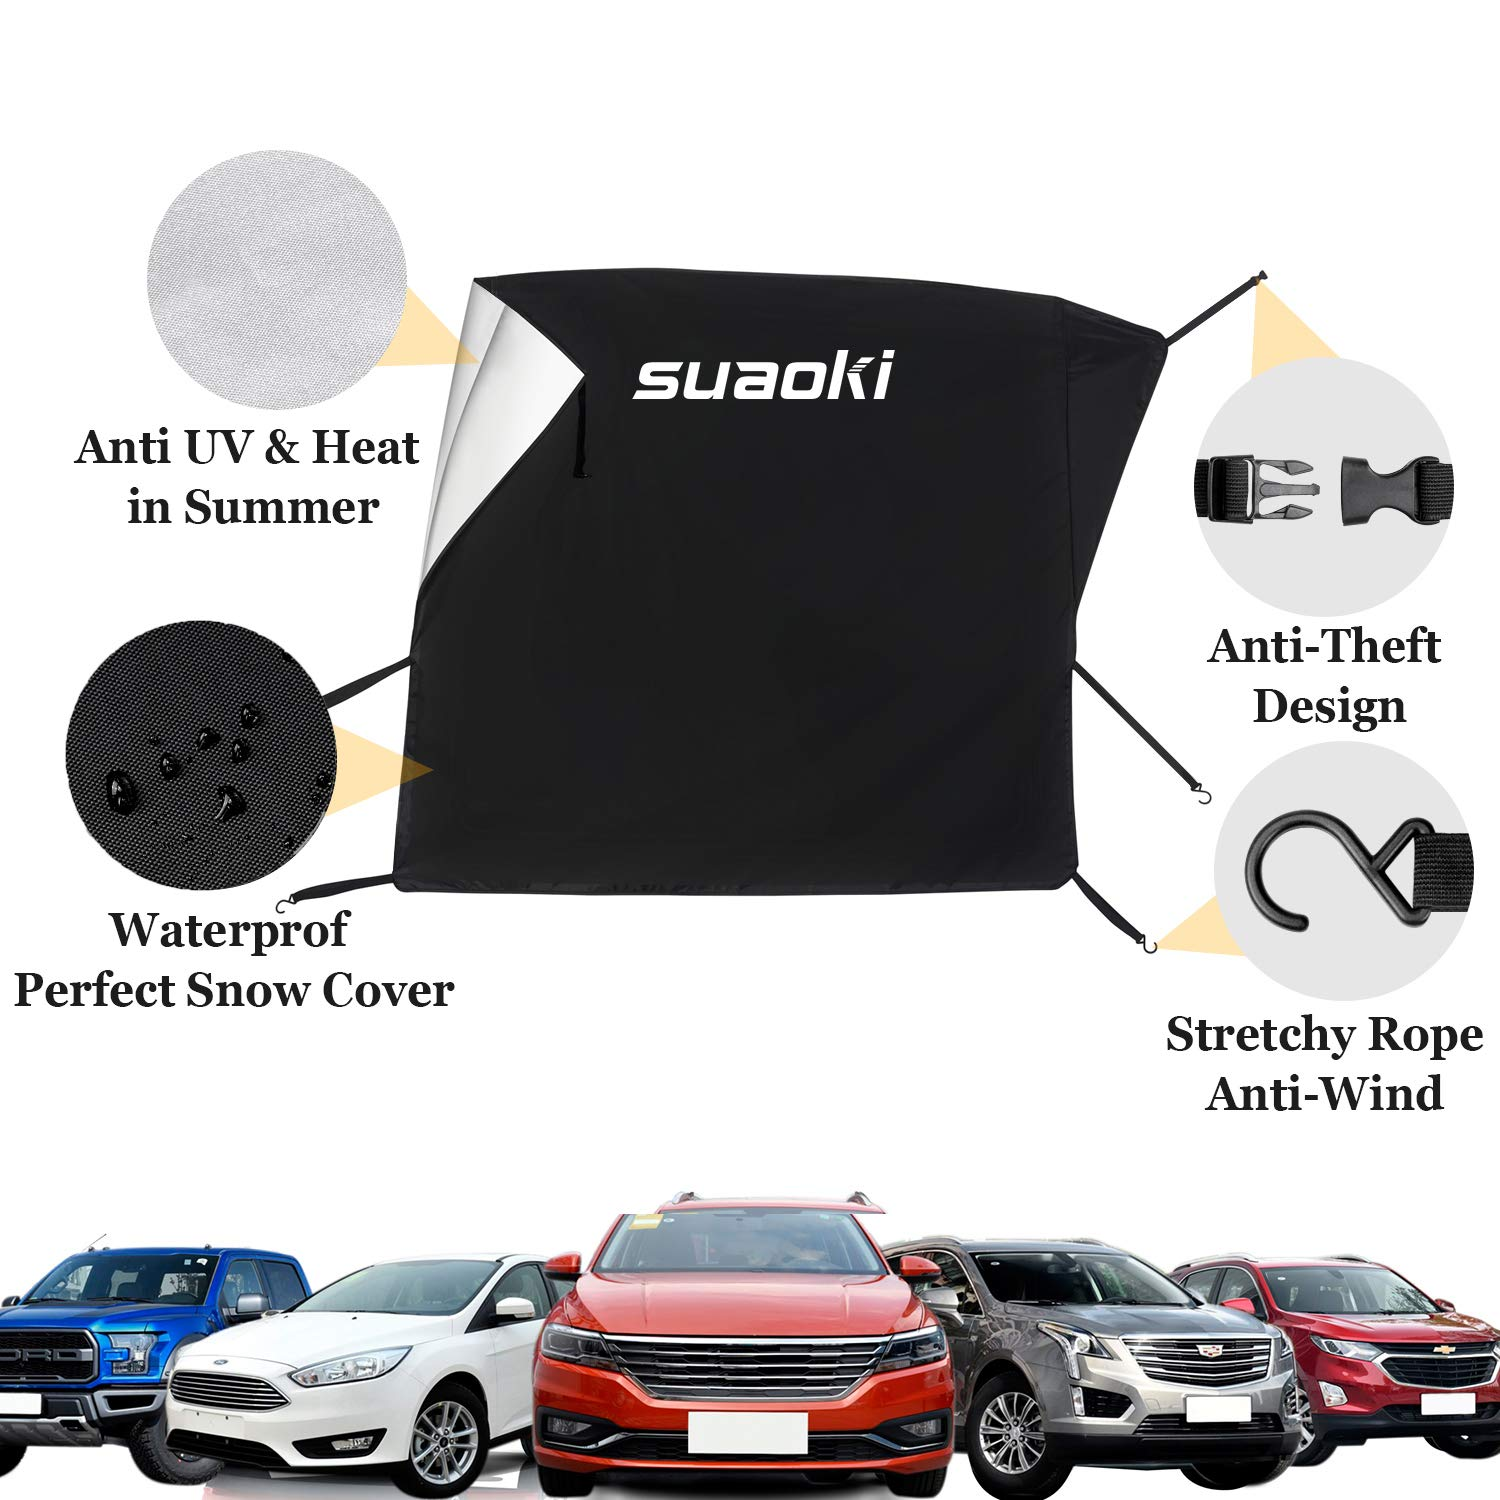 Trunk Ice Frost 80x 59 Snow Sun Protector Double Side Design Exterior Waterproof Fits Most Cars SUV SUAOKI Windshield Snow Cover Car Windshield Guard Van